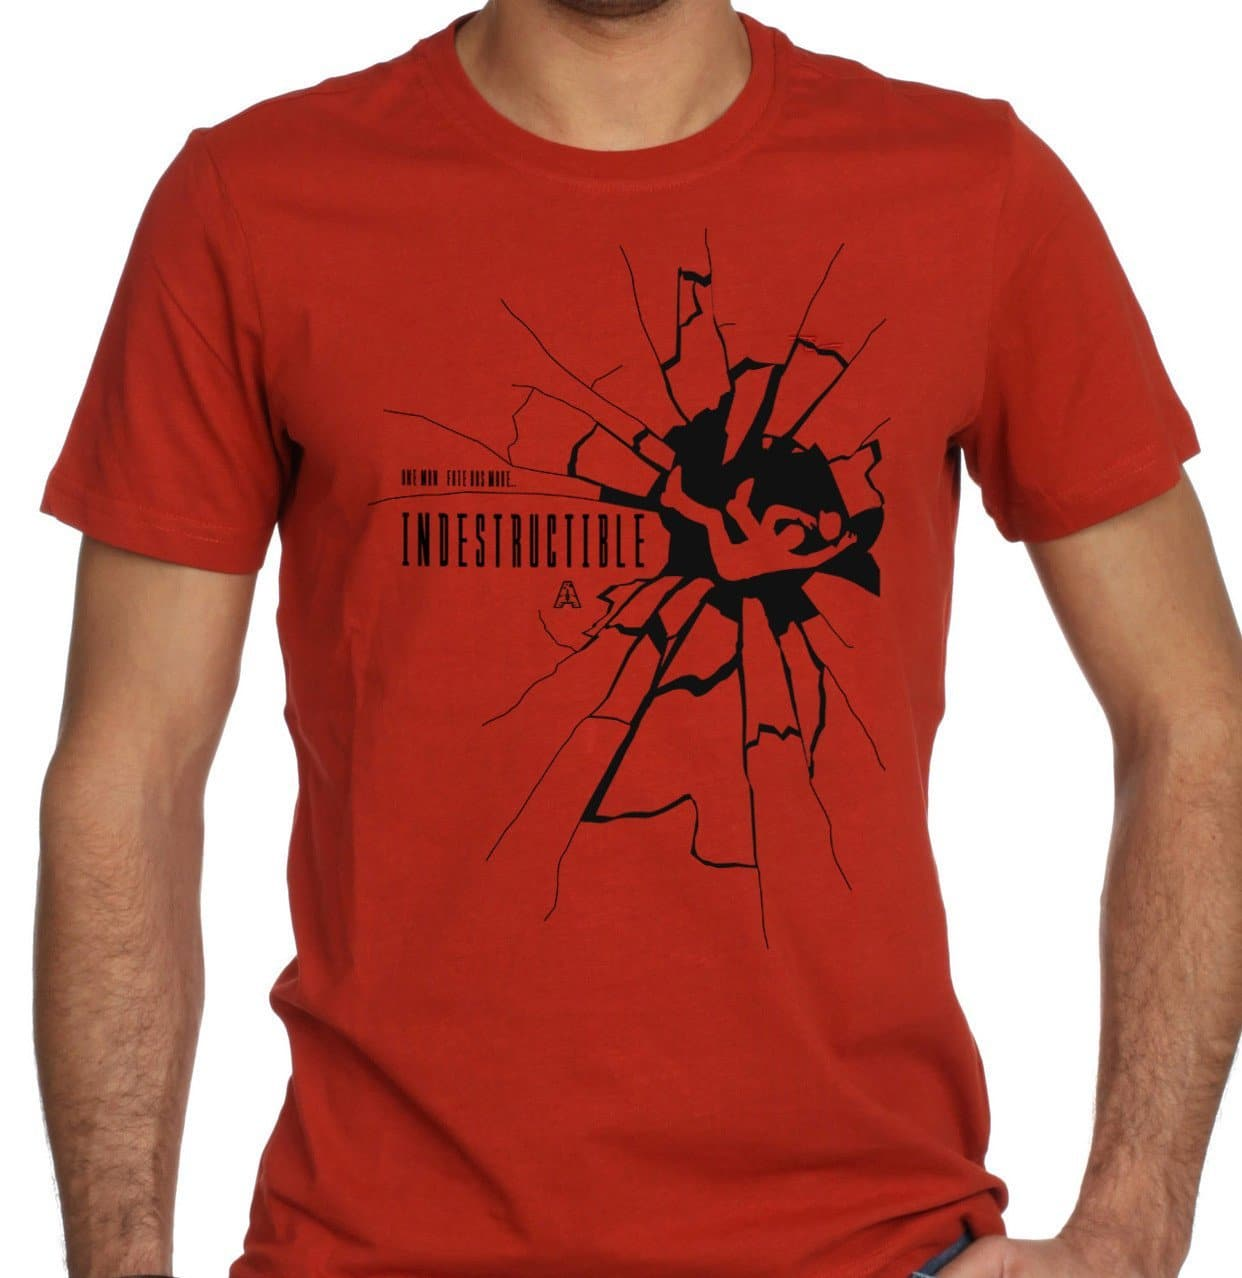 Captain Scarlet inspired T-Shirt [5% to Stroke Association] - The Gerry Anderson Store